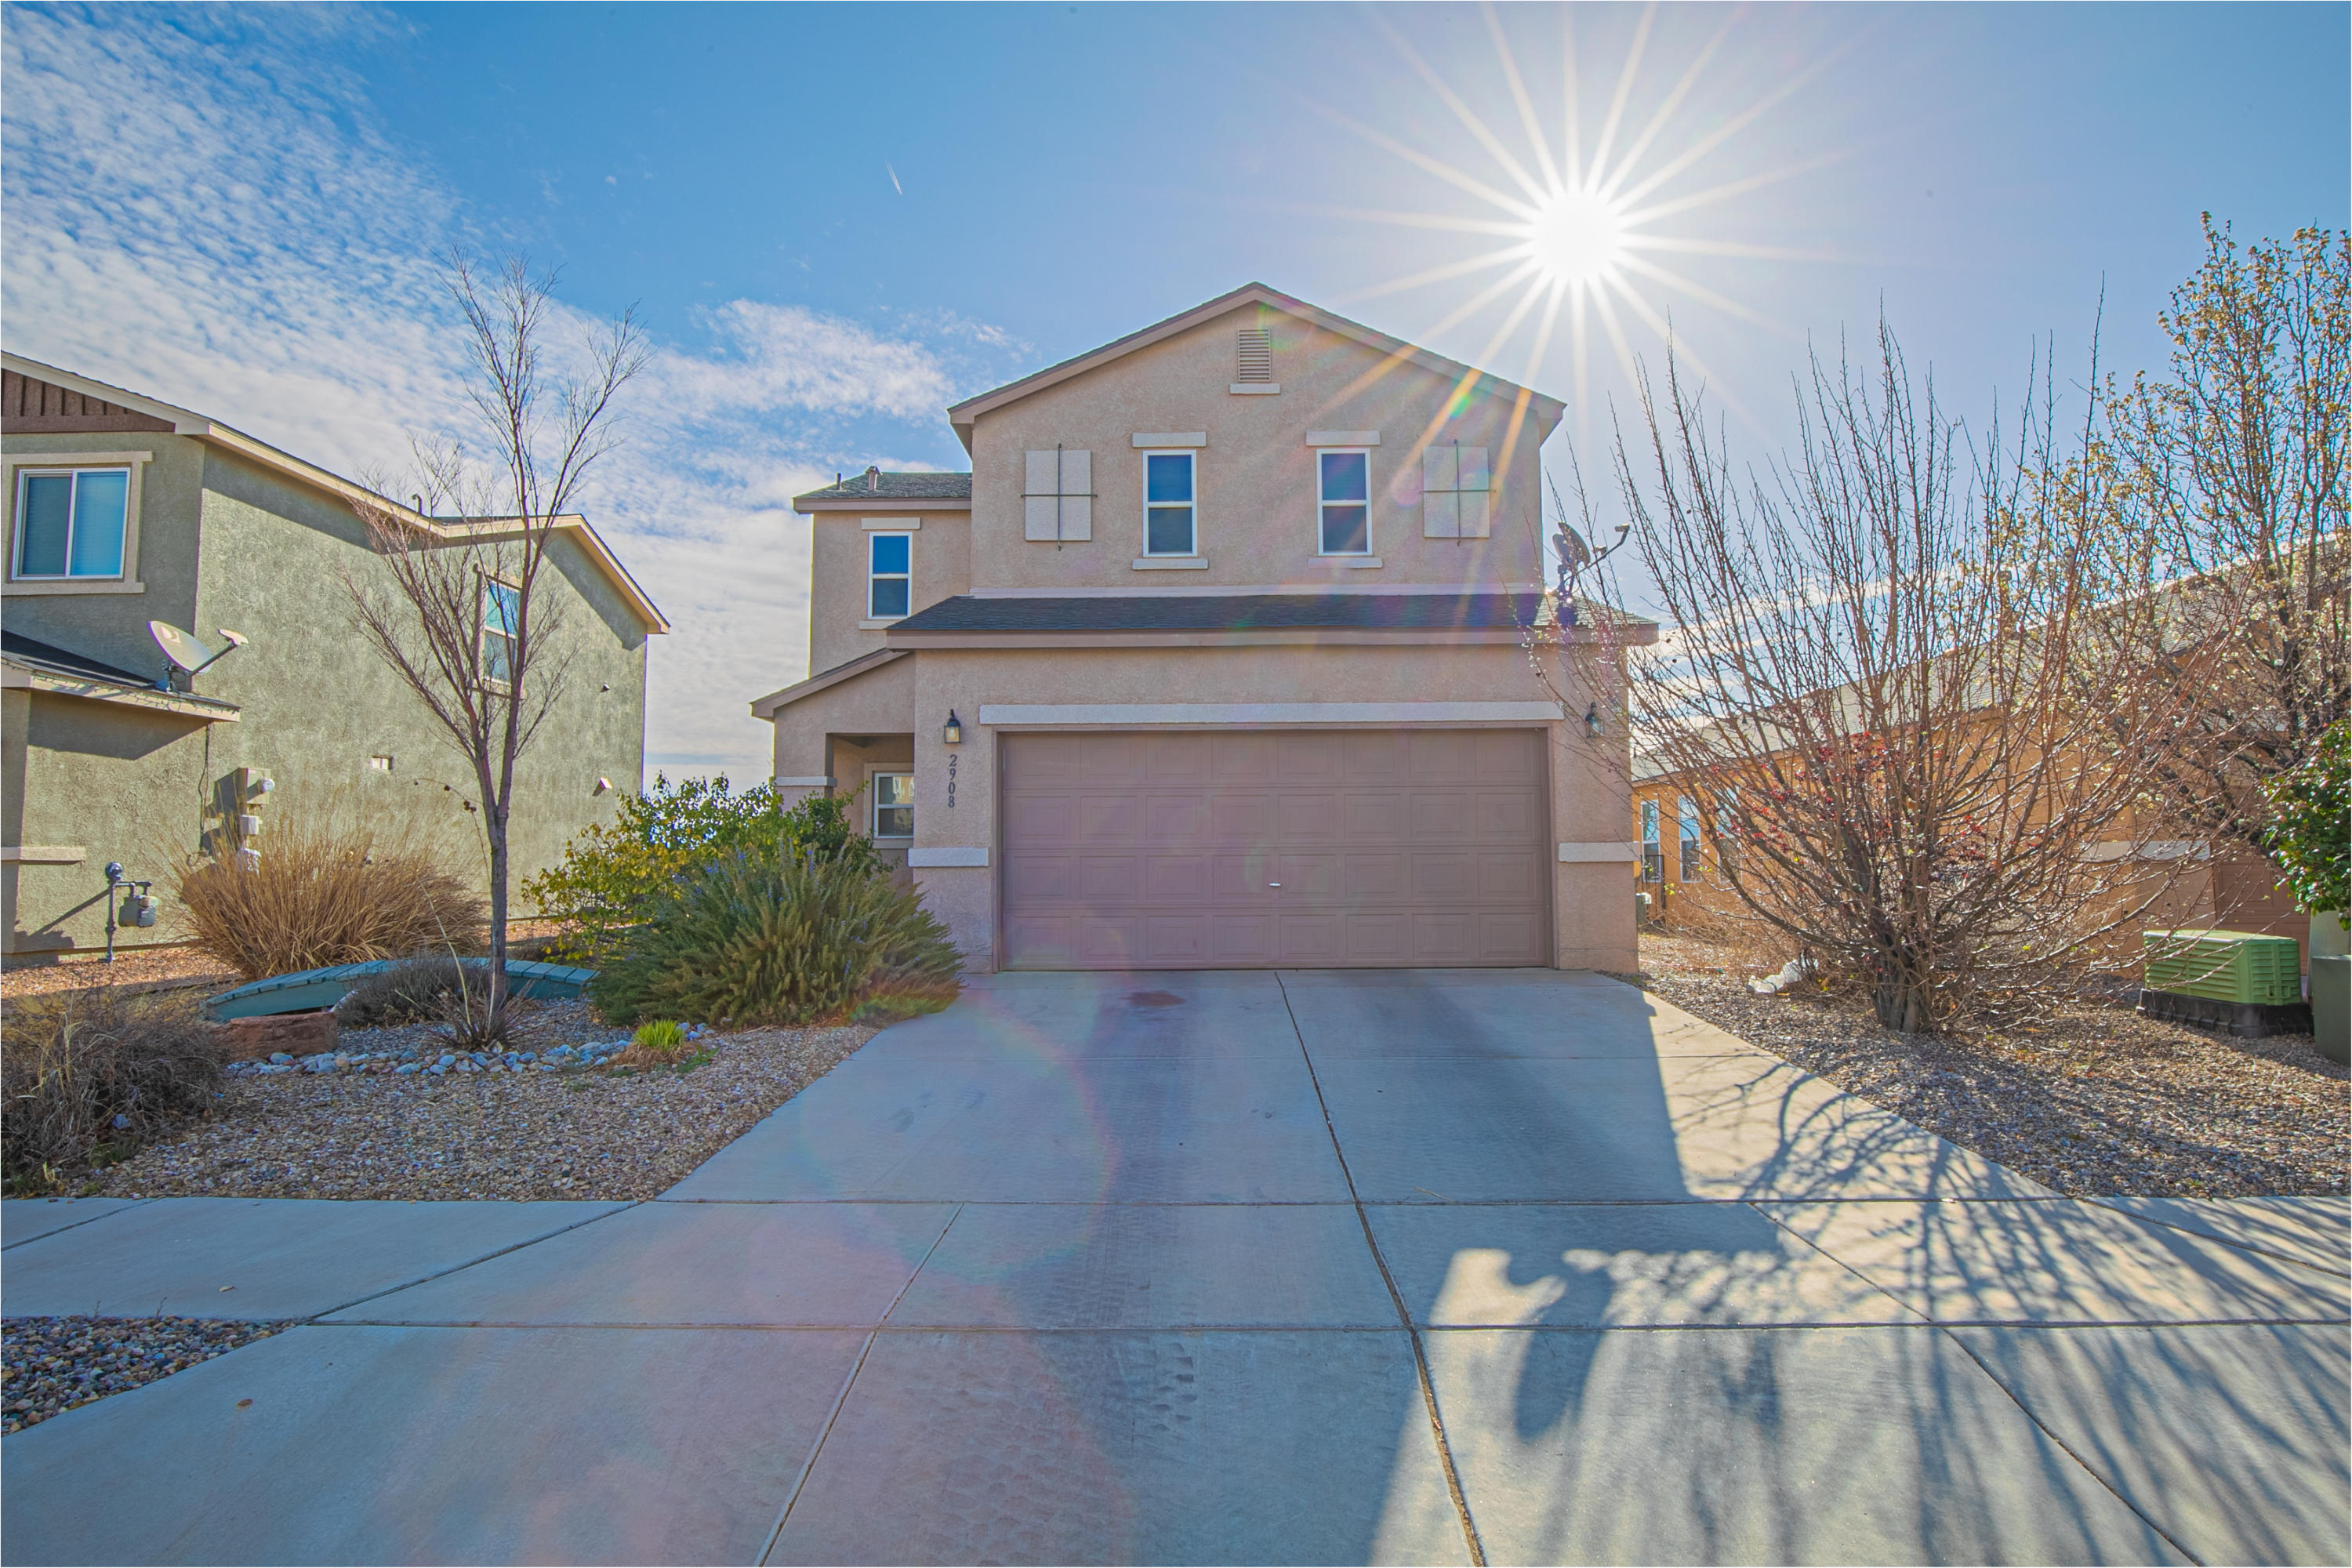 *Showings to start Saturday!*Anderson Heights Charmer! Large open main floor plan, spacious back yard with a view! Lived in but feels still new! Gated neighborhood with community pool and parks in neighborhood! Come check out your next home!